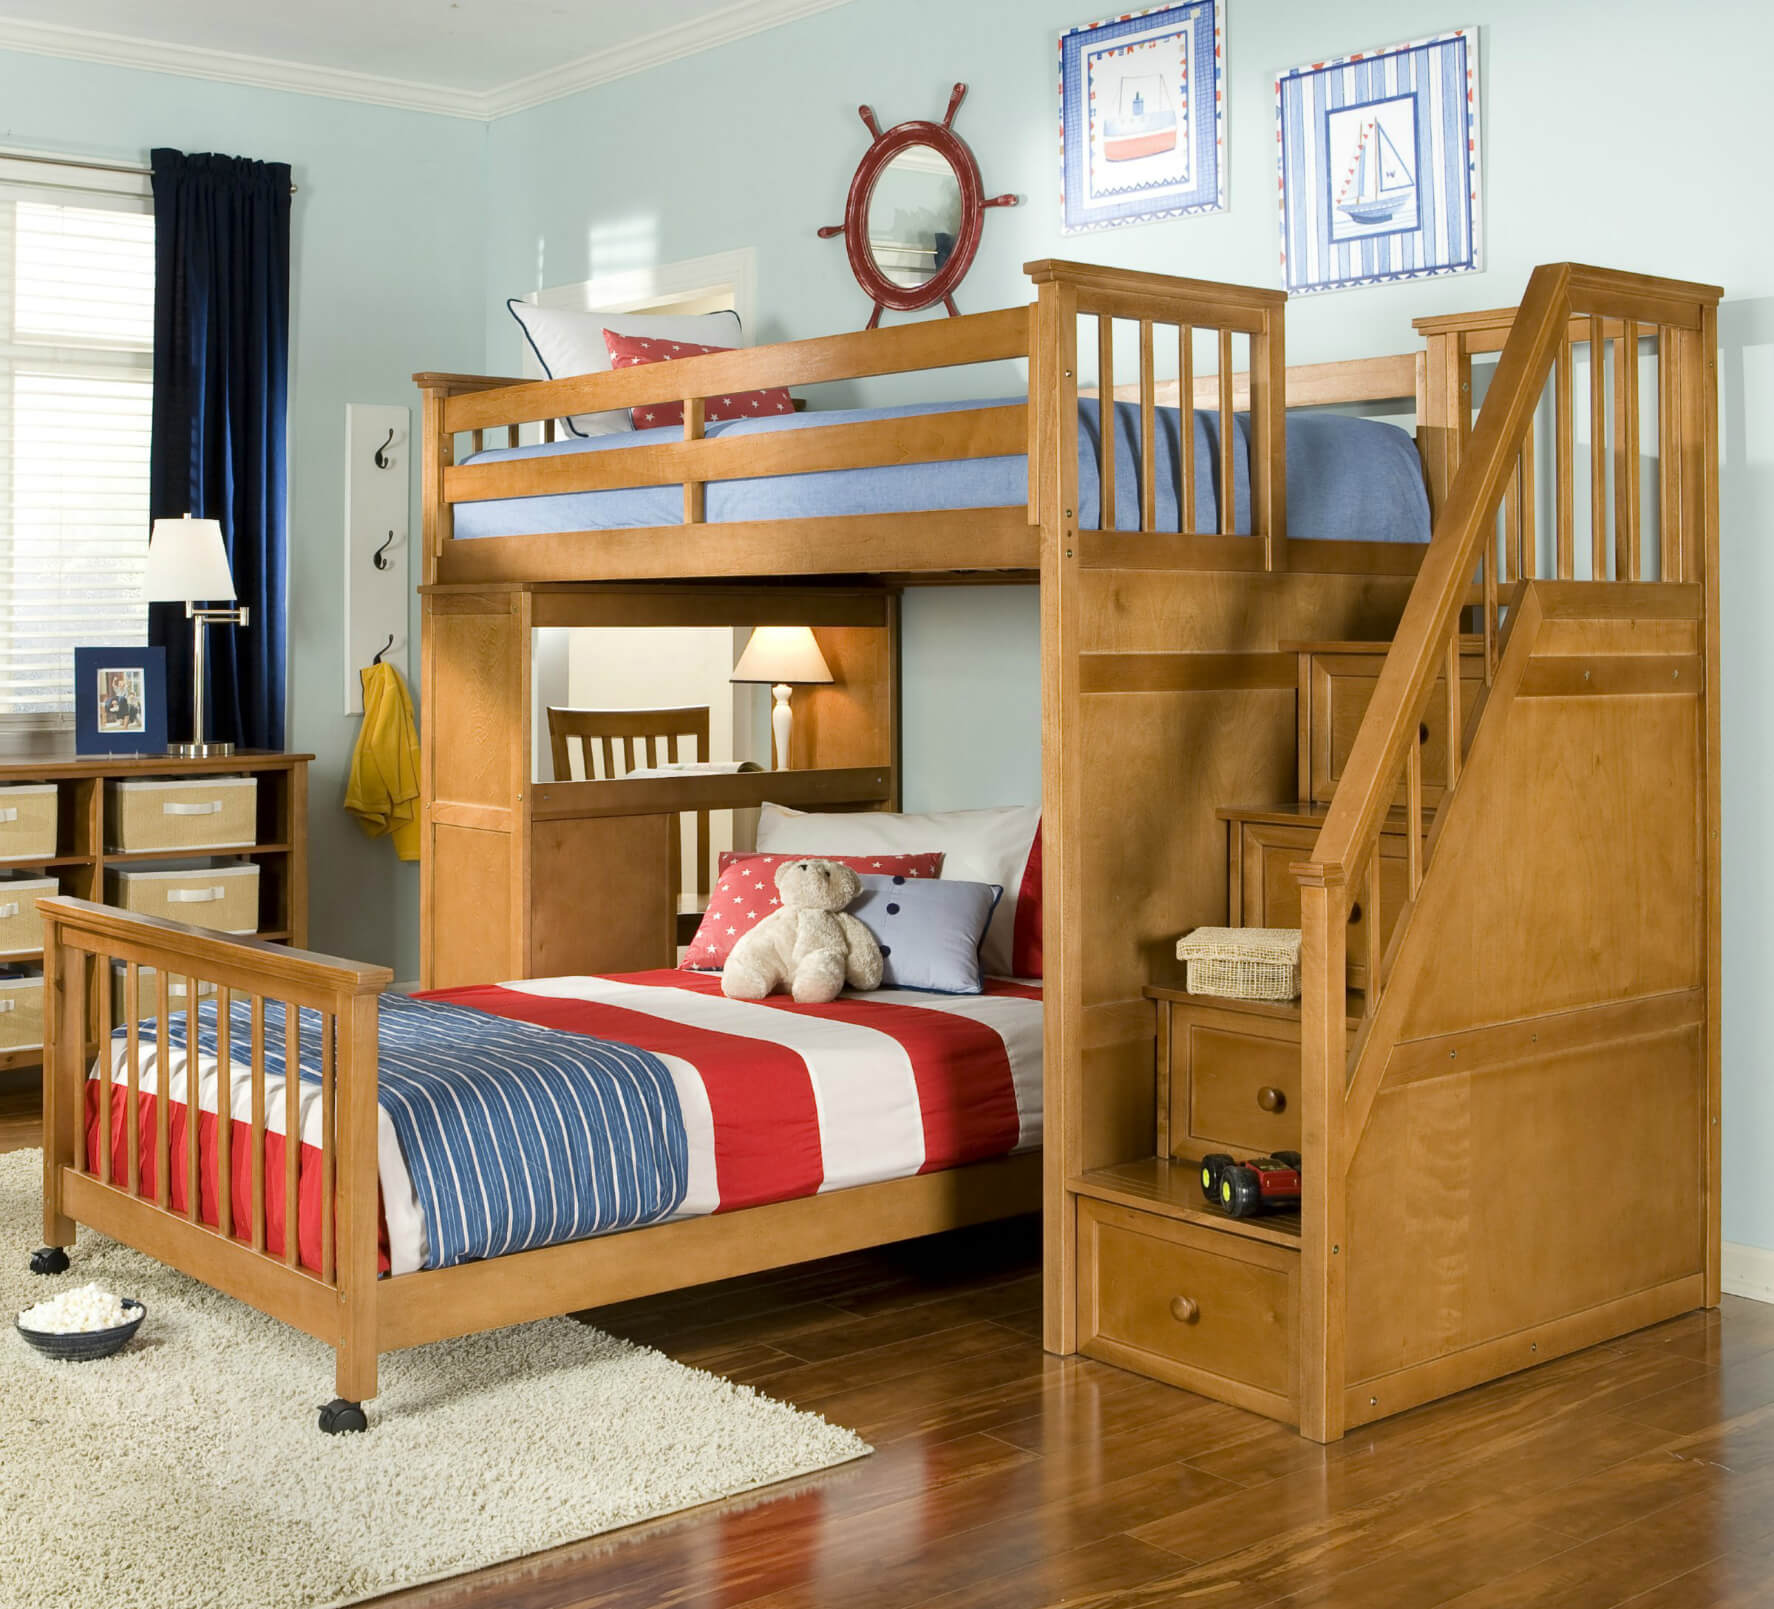 Bunk bed with stairs and storage - Bunk Bed With Stairs And Storage 35